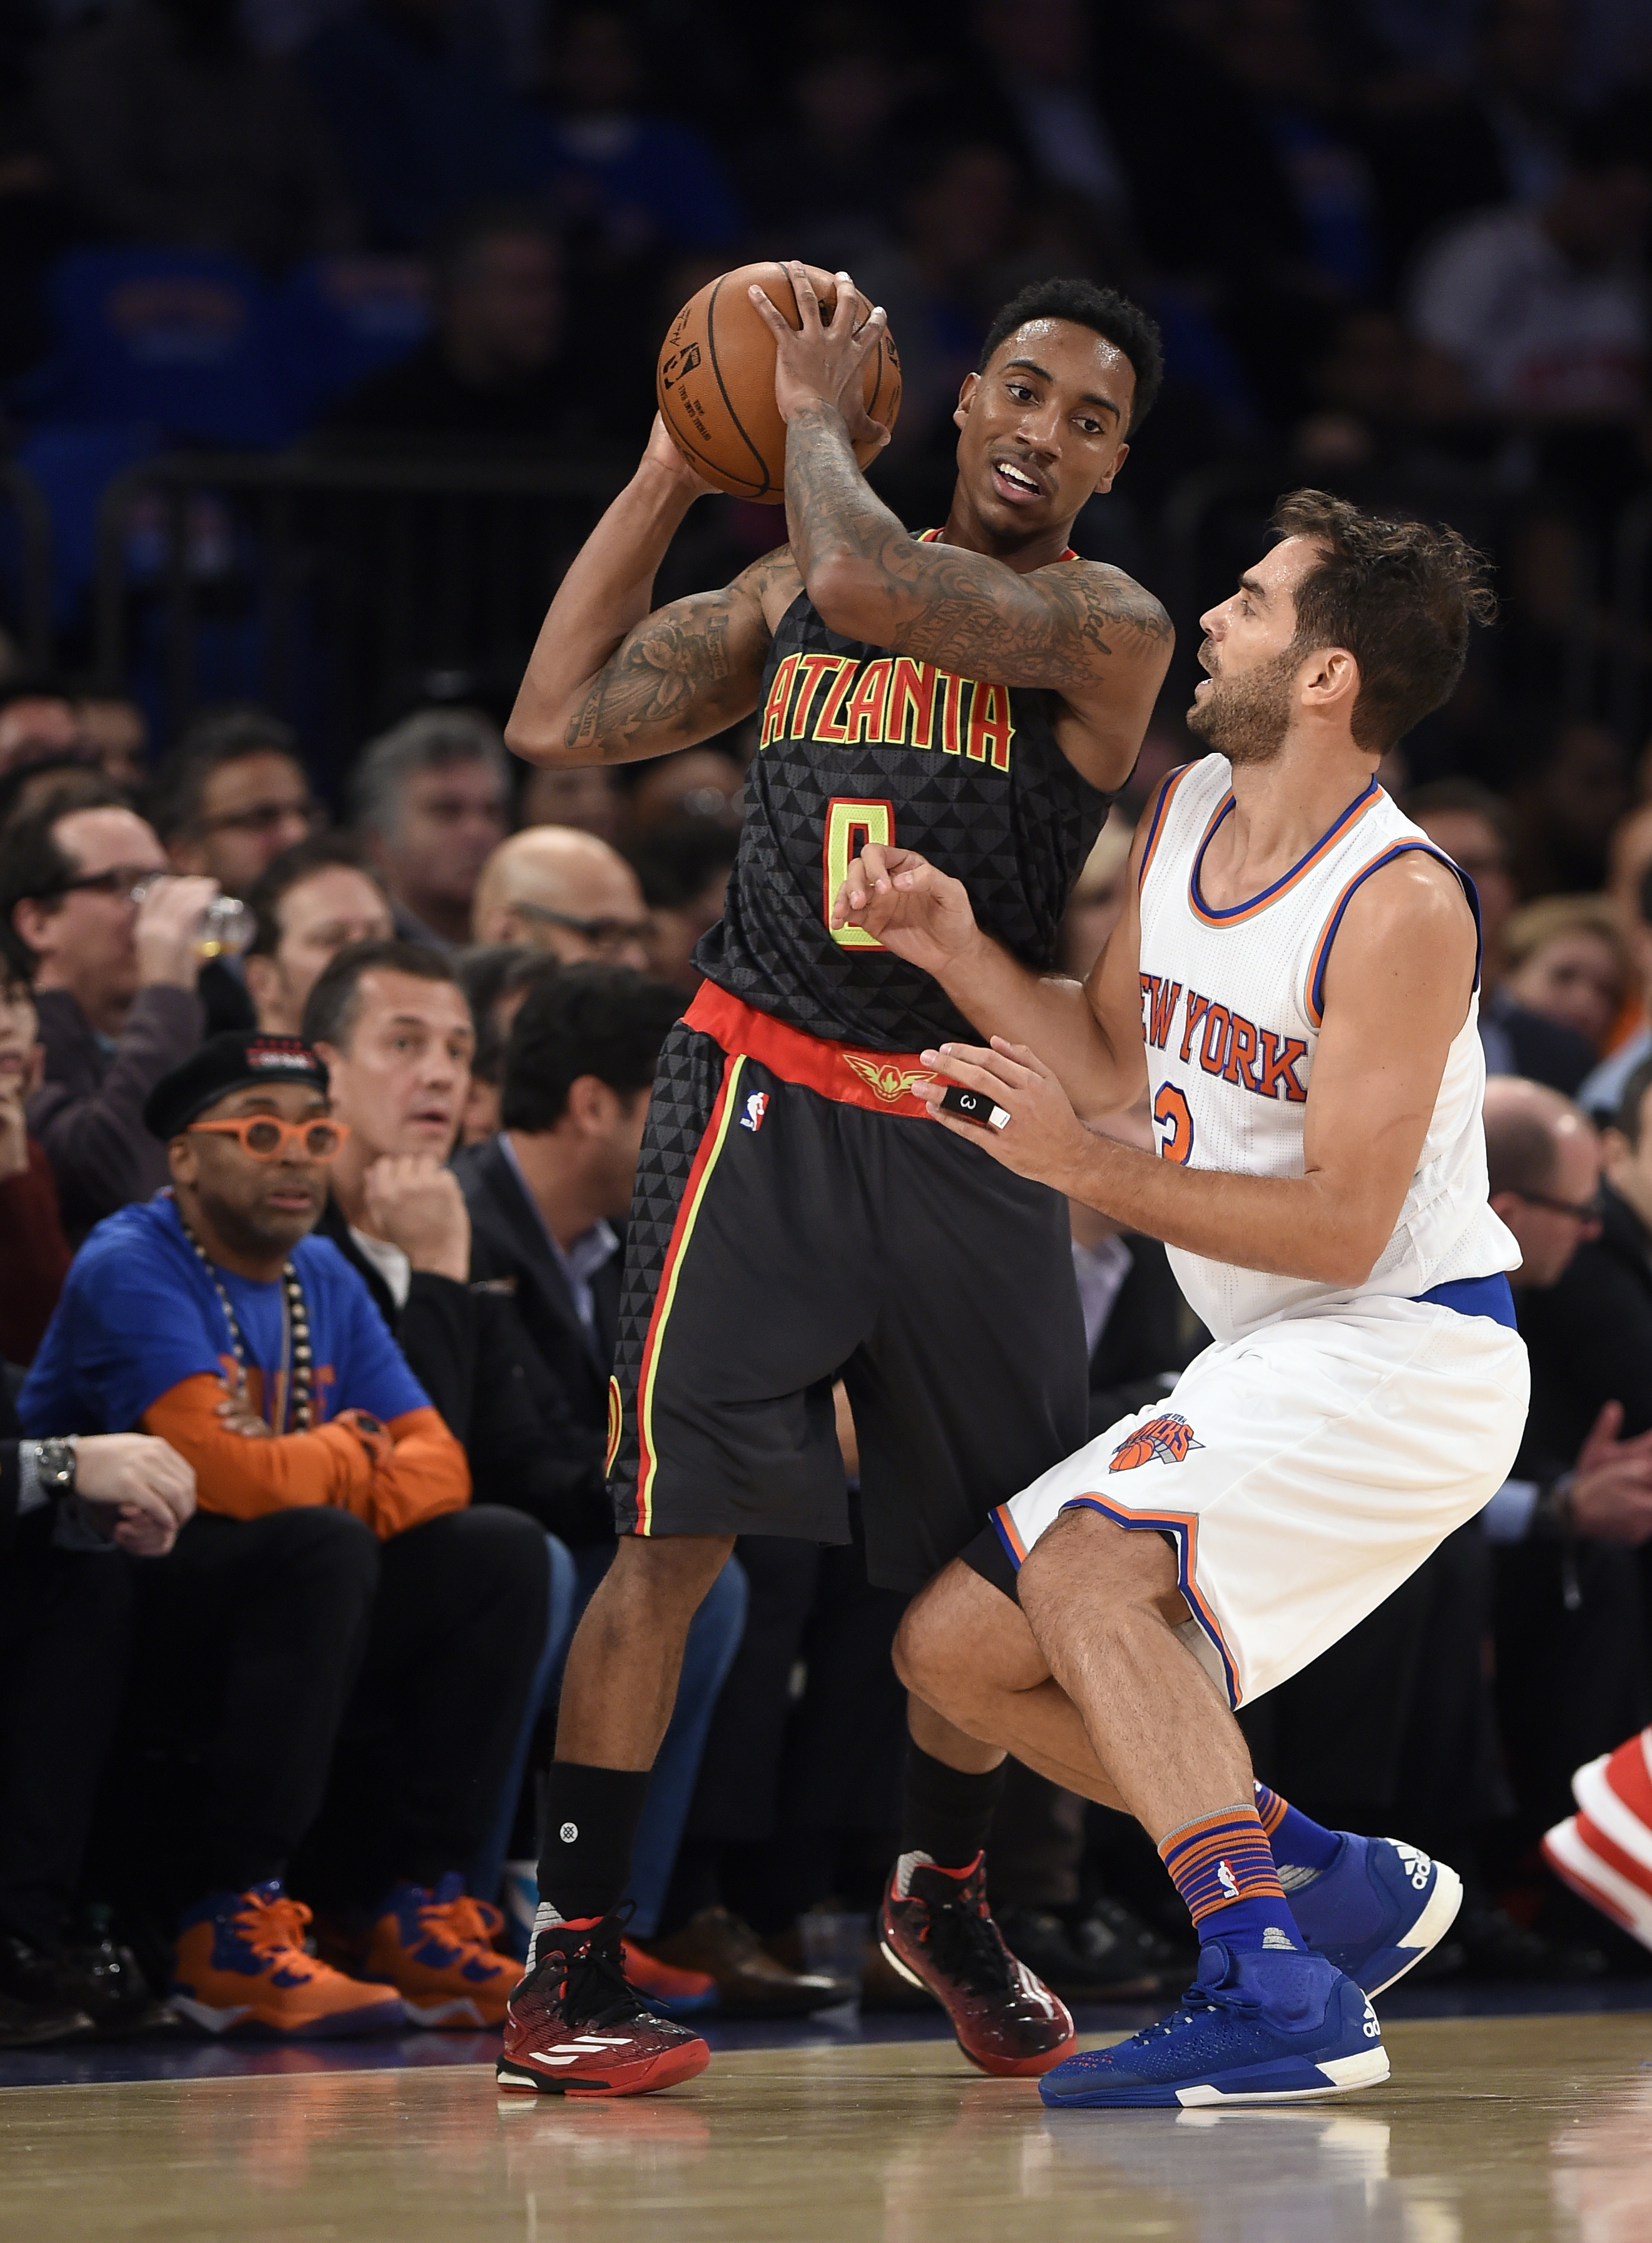 Atlanta Hawks guard Jeff Teague (0) keeps the ball away from New York Knicks guard Jose Calderon (3) as film director Spike Lee, left, watches during the first half of an NBA basketball game on Thursday, Oct. 29, 2015, in New York. (AP Photo/Kathy Kmonice